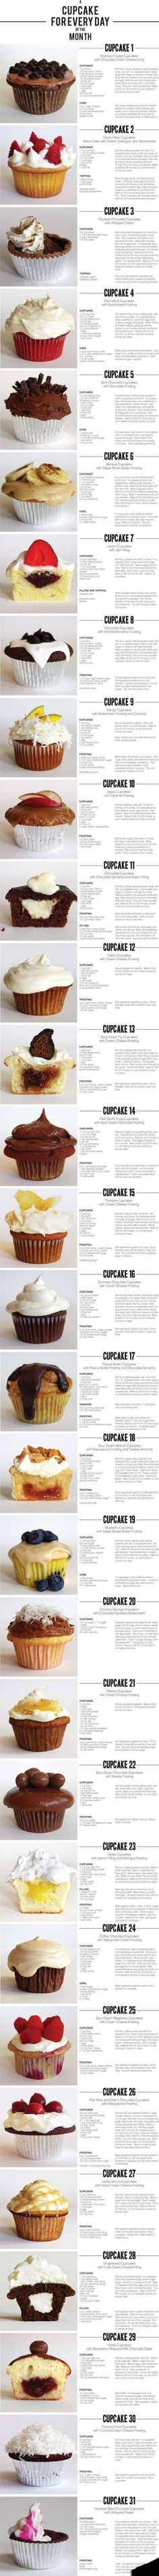 I Would Legitimately Consider Trading My Soul For Someone To Make Me Some Of These. Any Takers